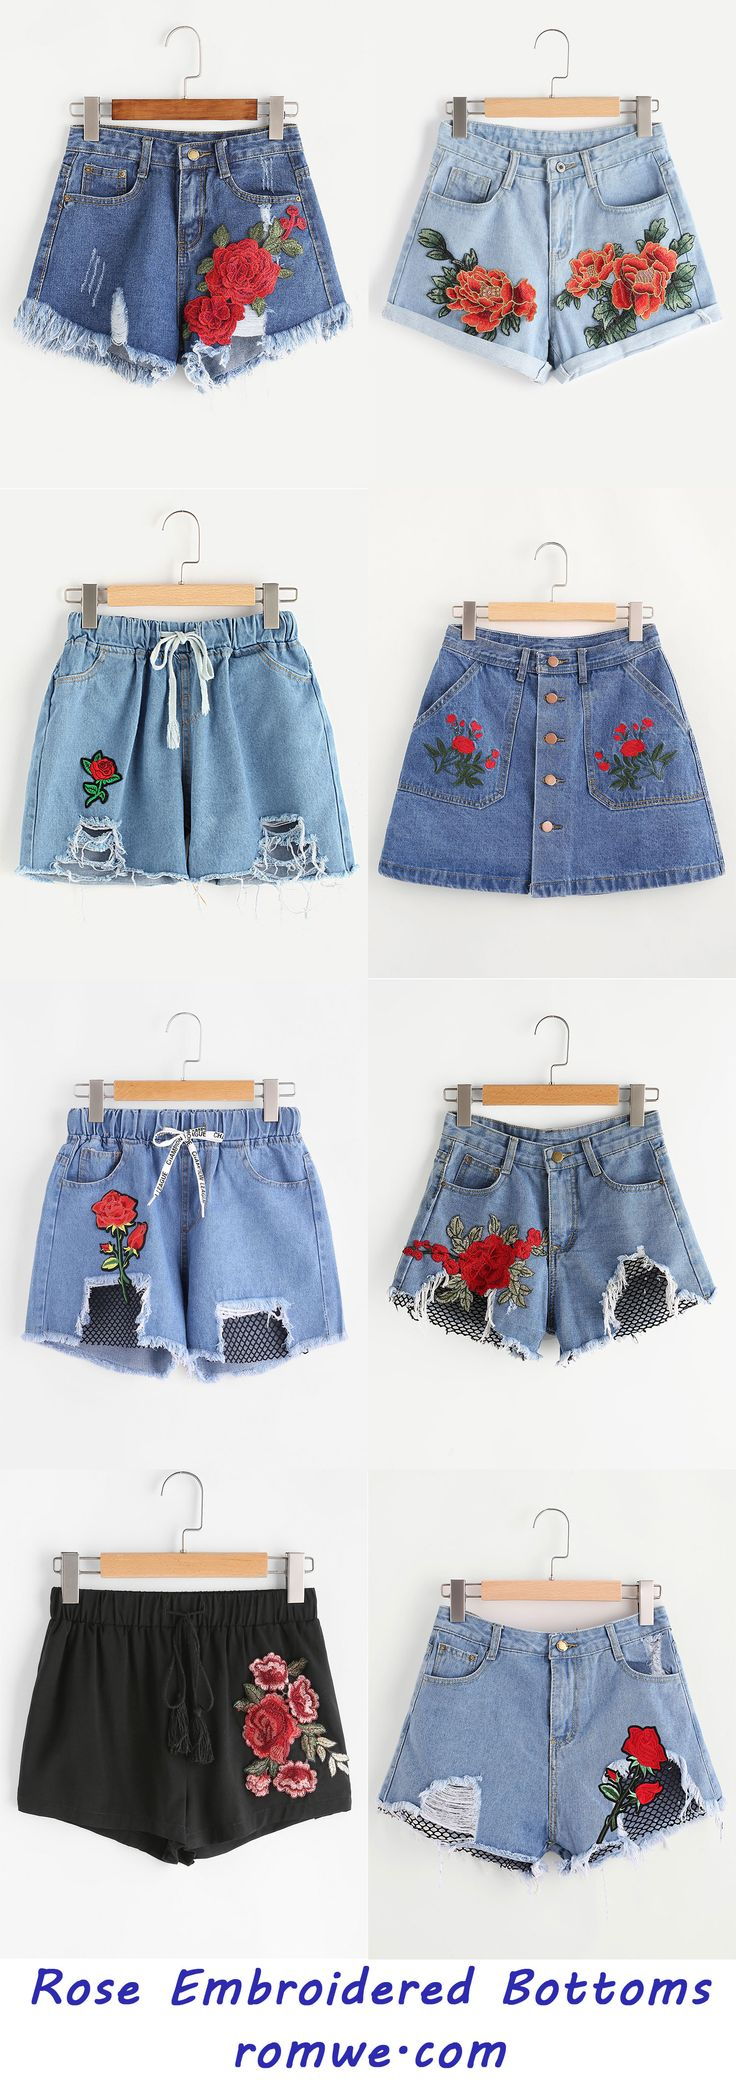 Rose Embroidered Bottoms - romwe.com